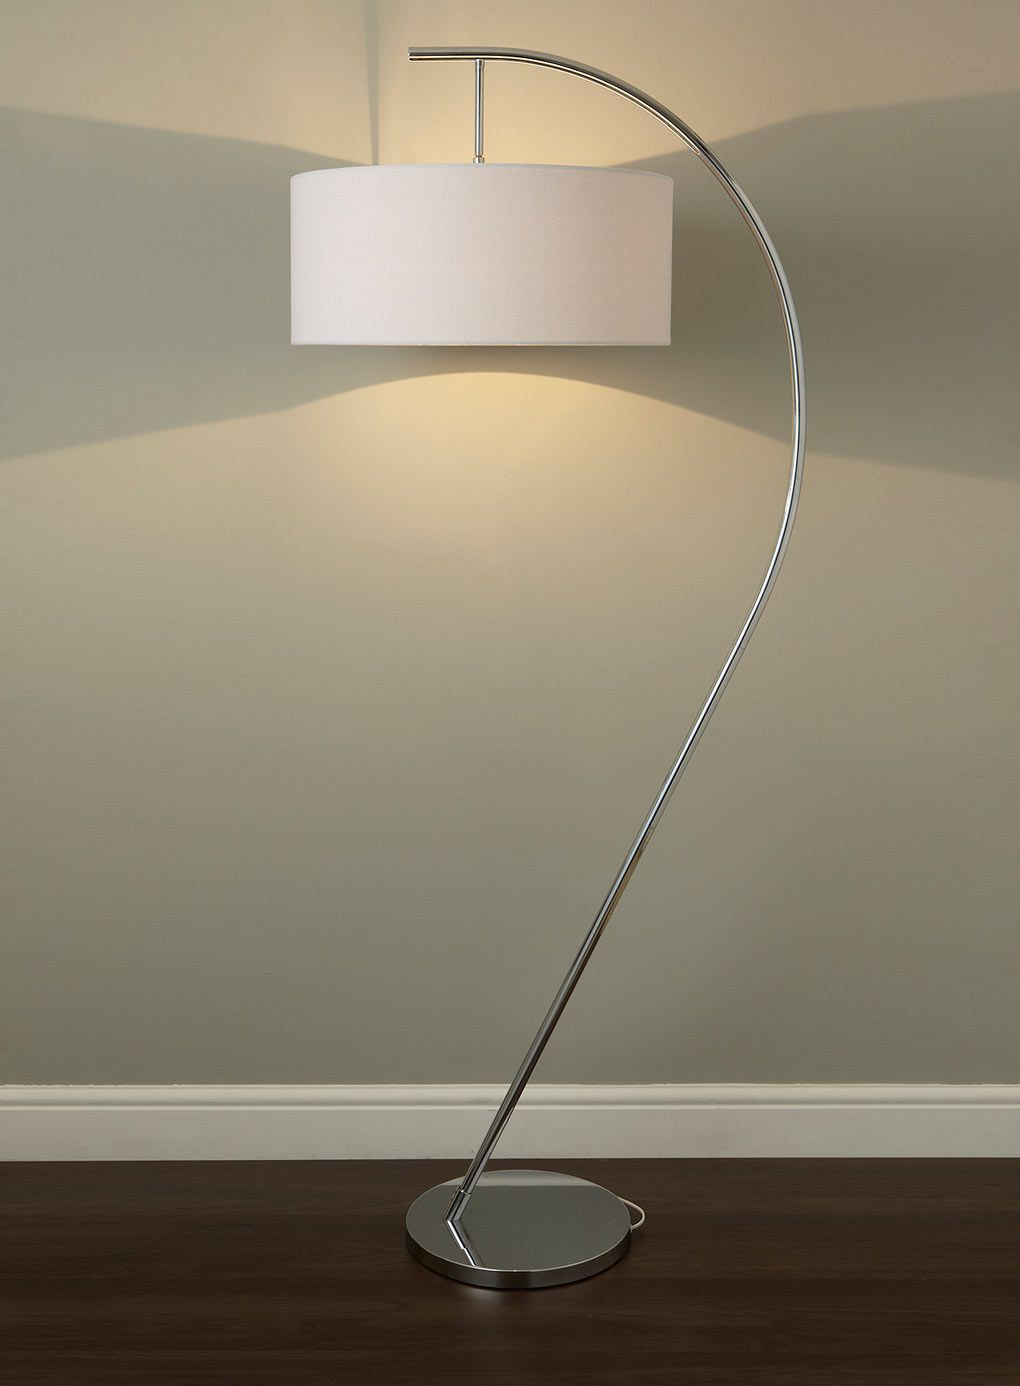 Chrome arch floor lamp future vancouver digs pinterest chrome arch floor lamp mozeypictures Choice Image